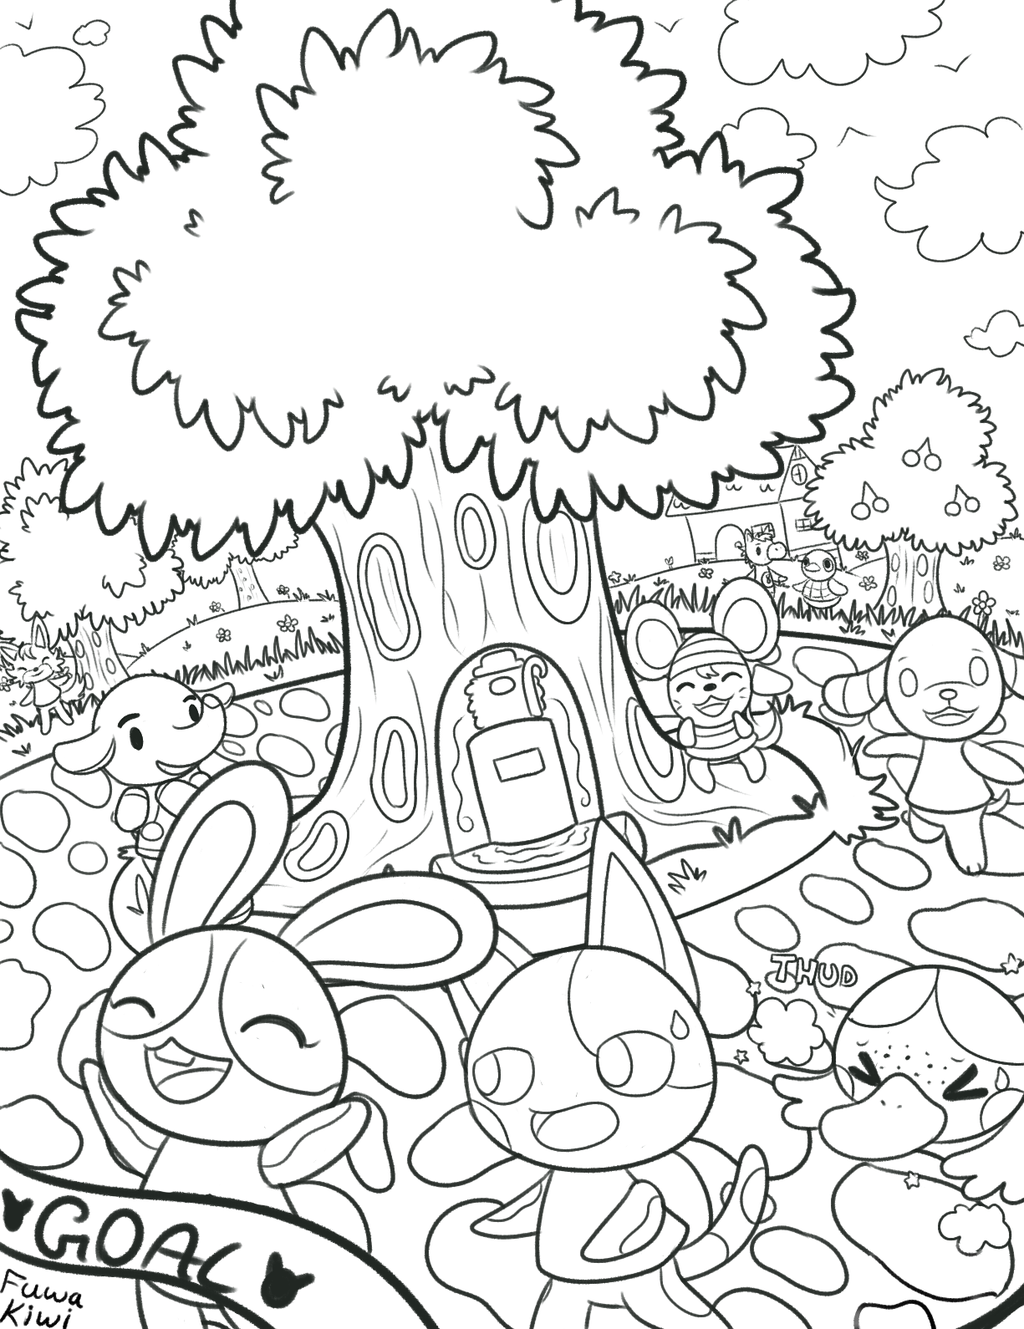 Uncategorized Animal Crossing Coloring Pages animal crossing coloring pages for kids and adults adults